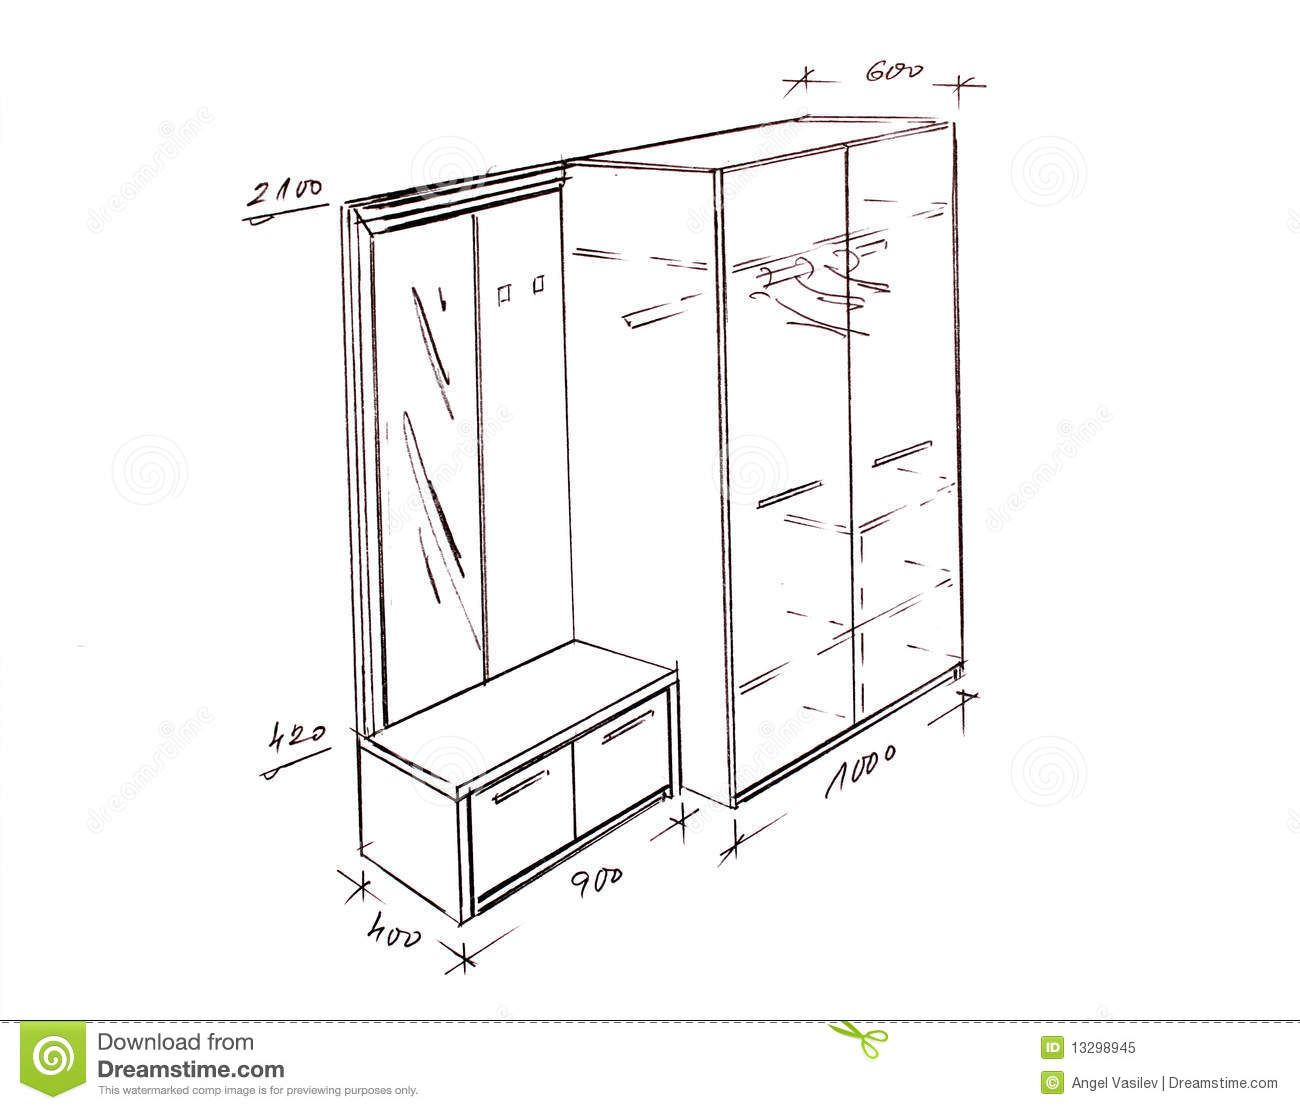 Furniture design drawings furniture design drawings for Drawing room furniture designs